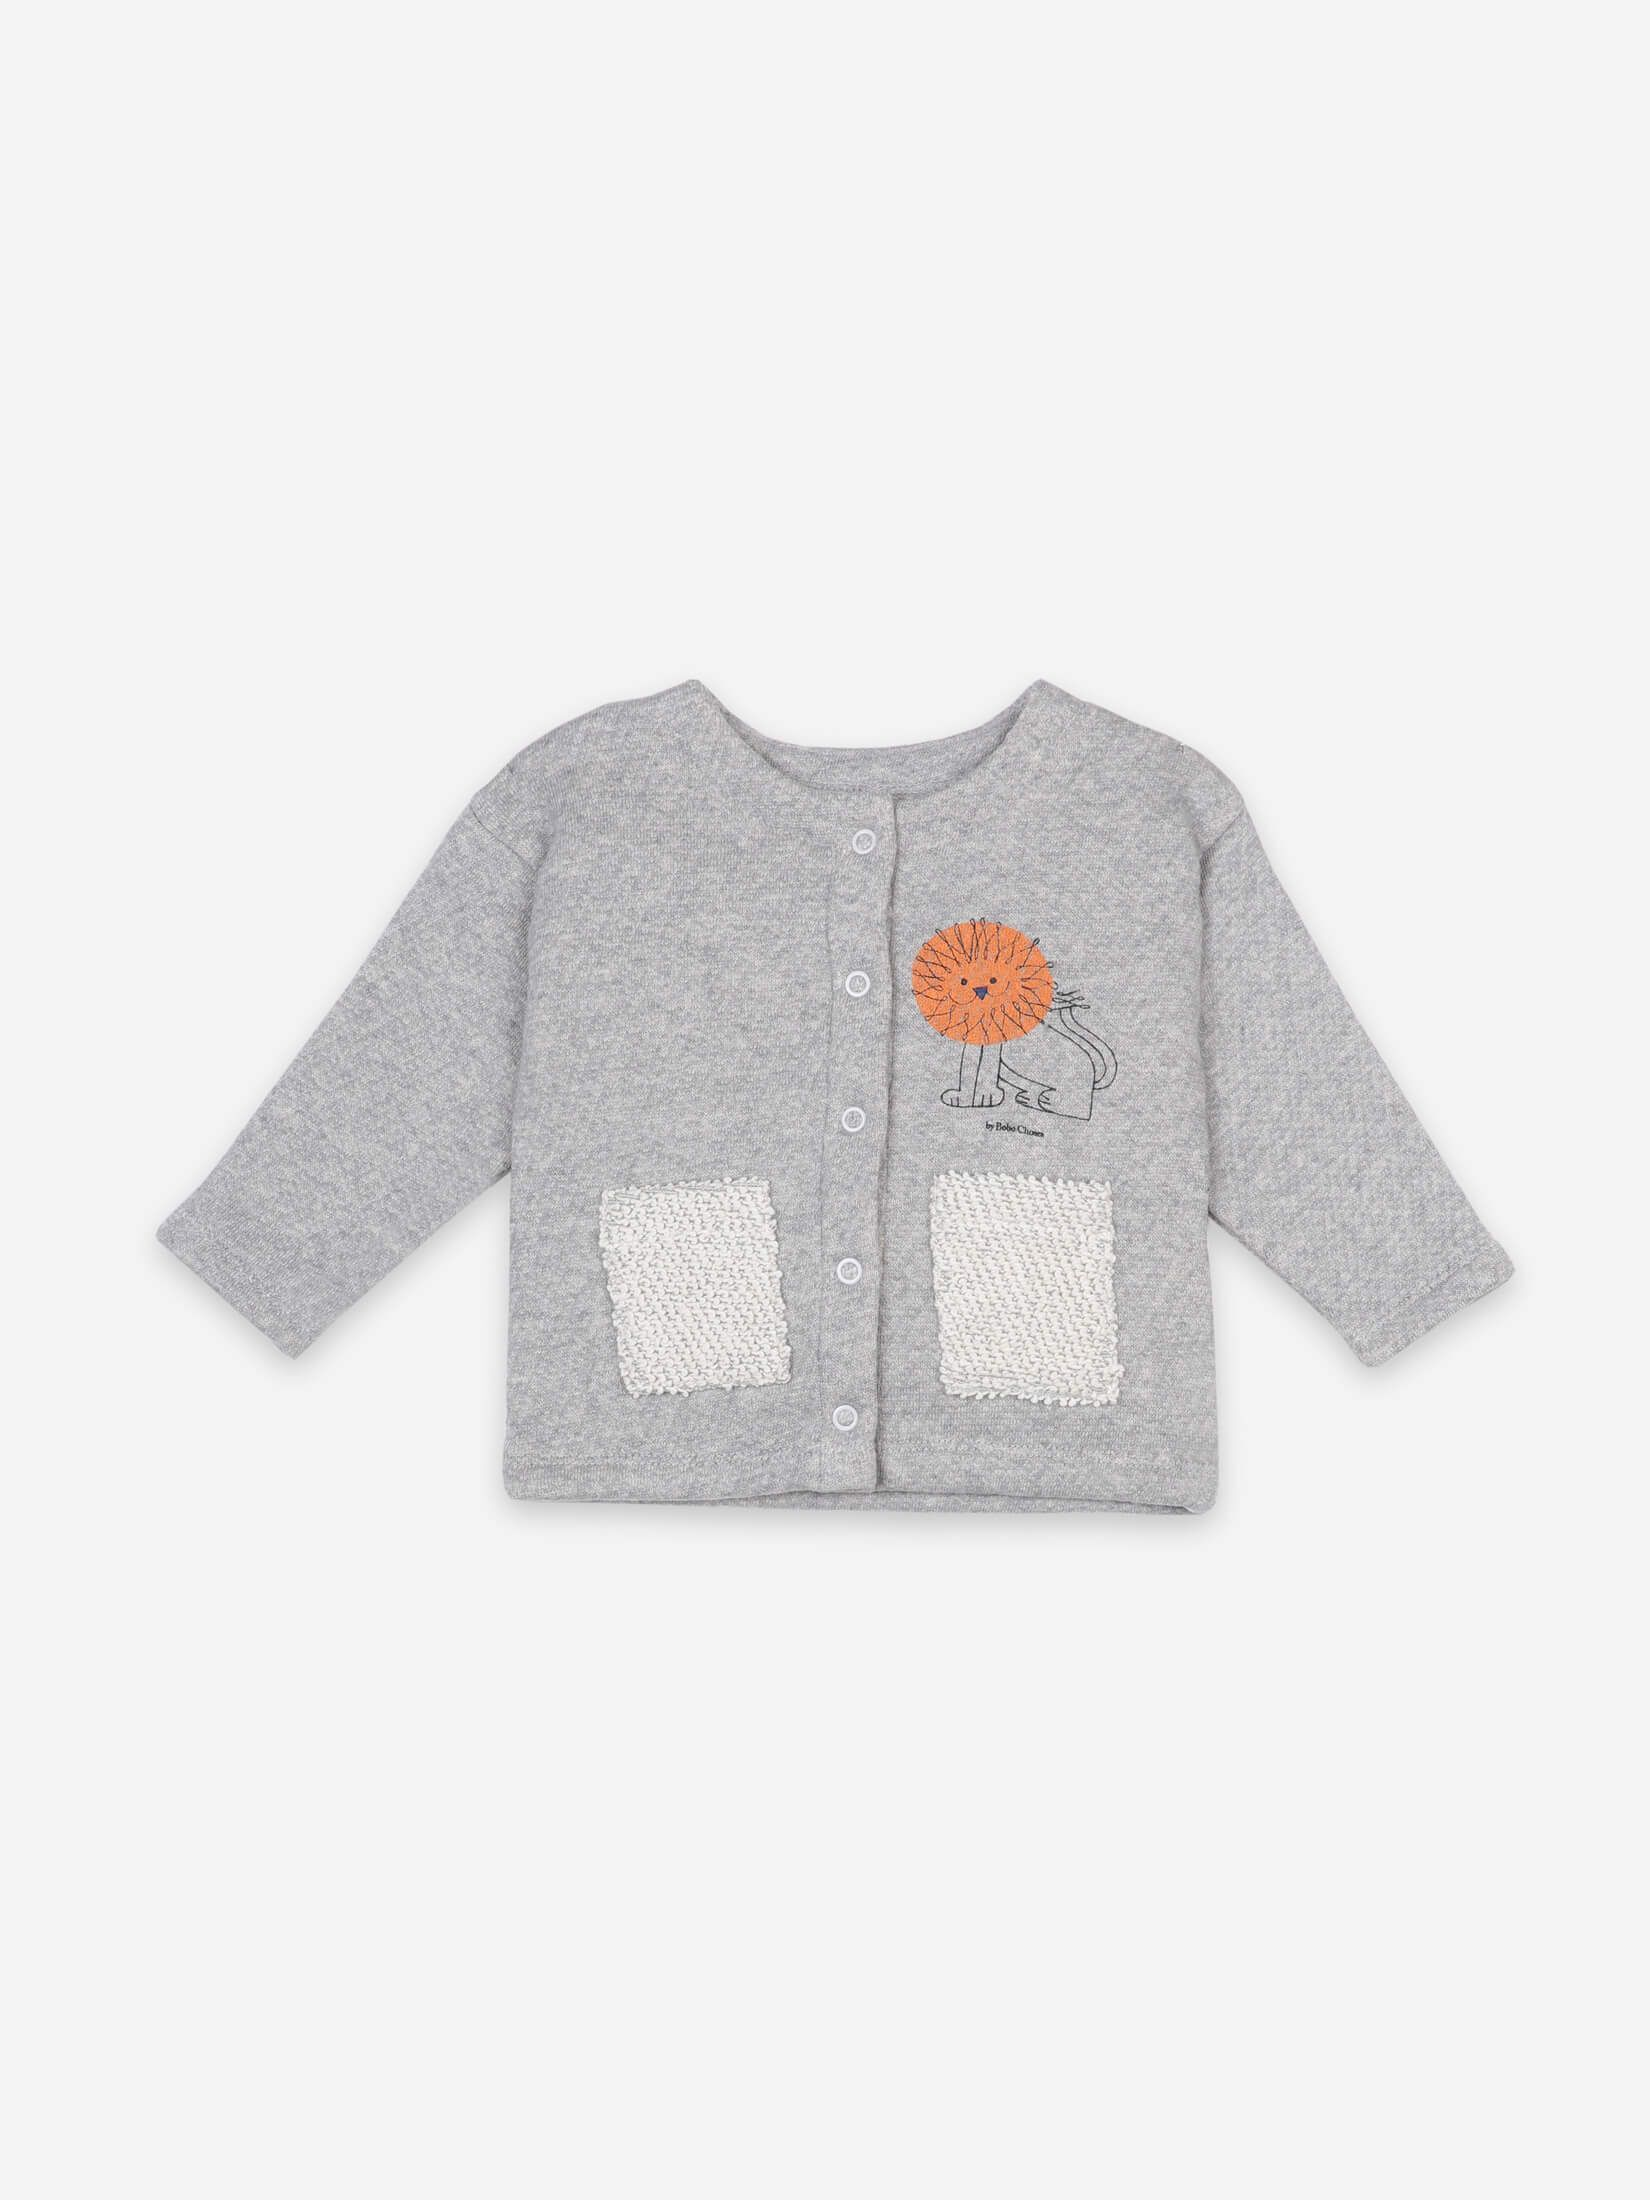 BOBO CHOSES ボボショセス Pet A Lion Buttoned Sweatshirt size:12-18M(80-90)